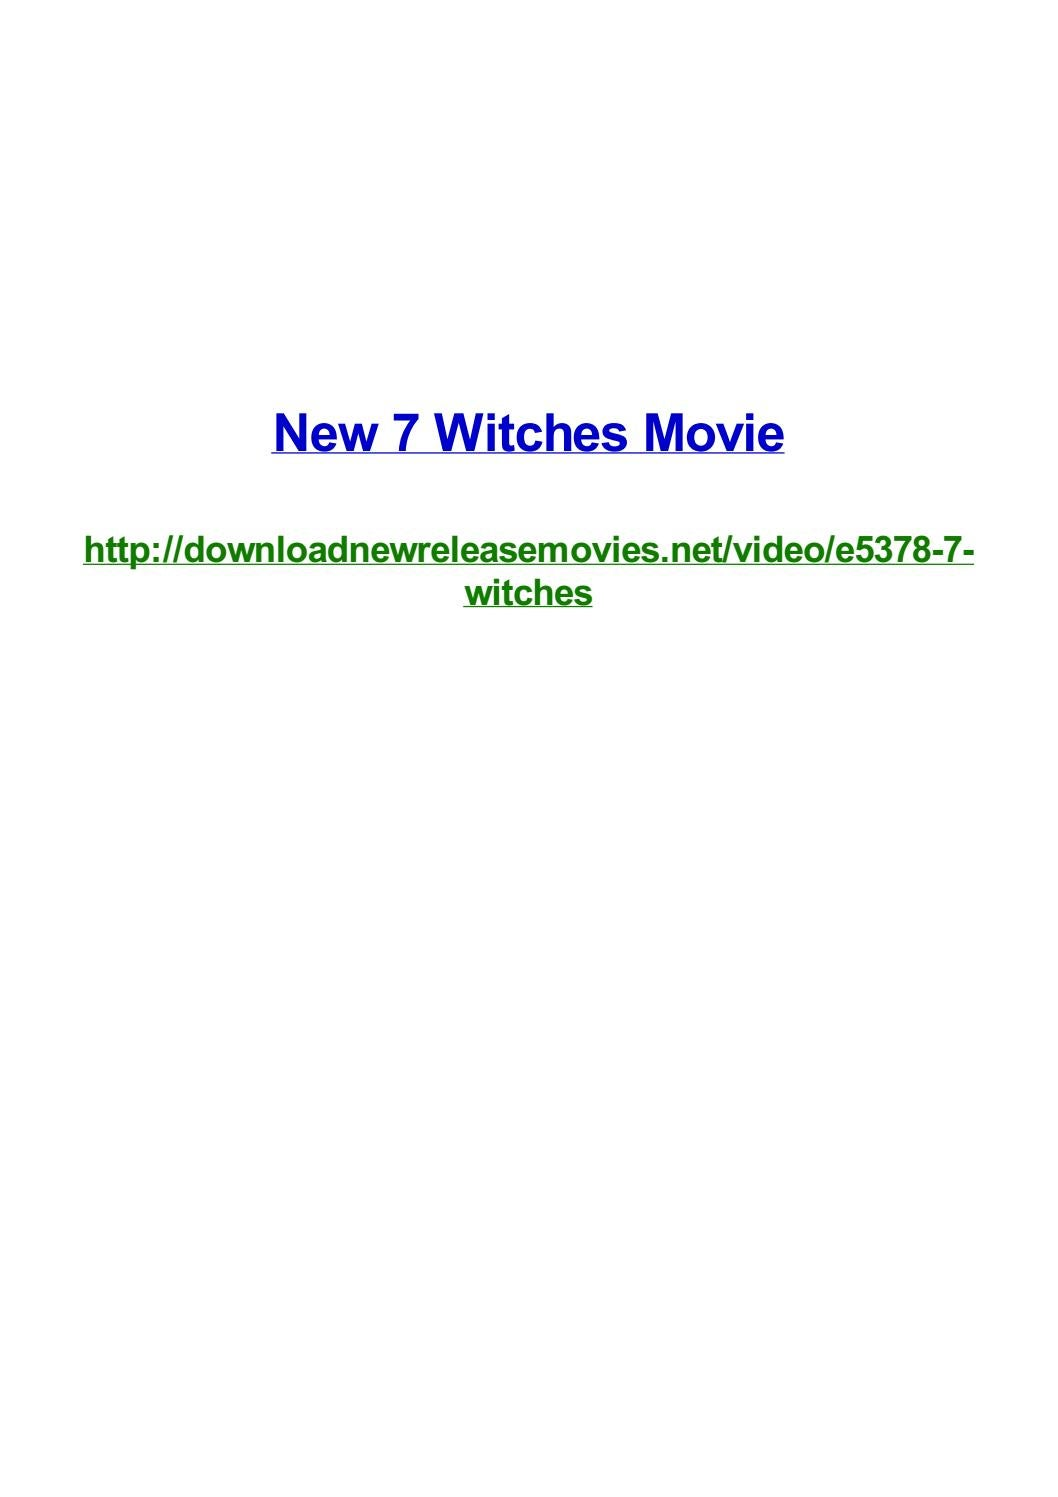 New 7 Witches Movie By Frank Seamons Issuu